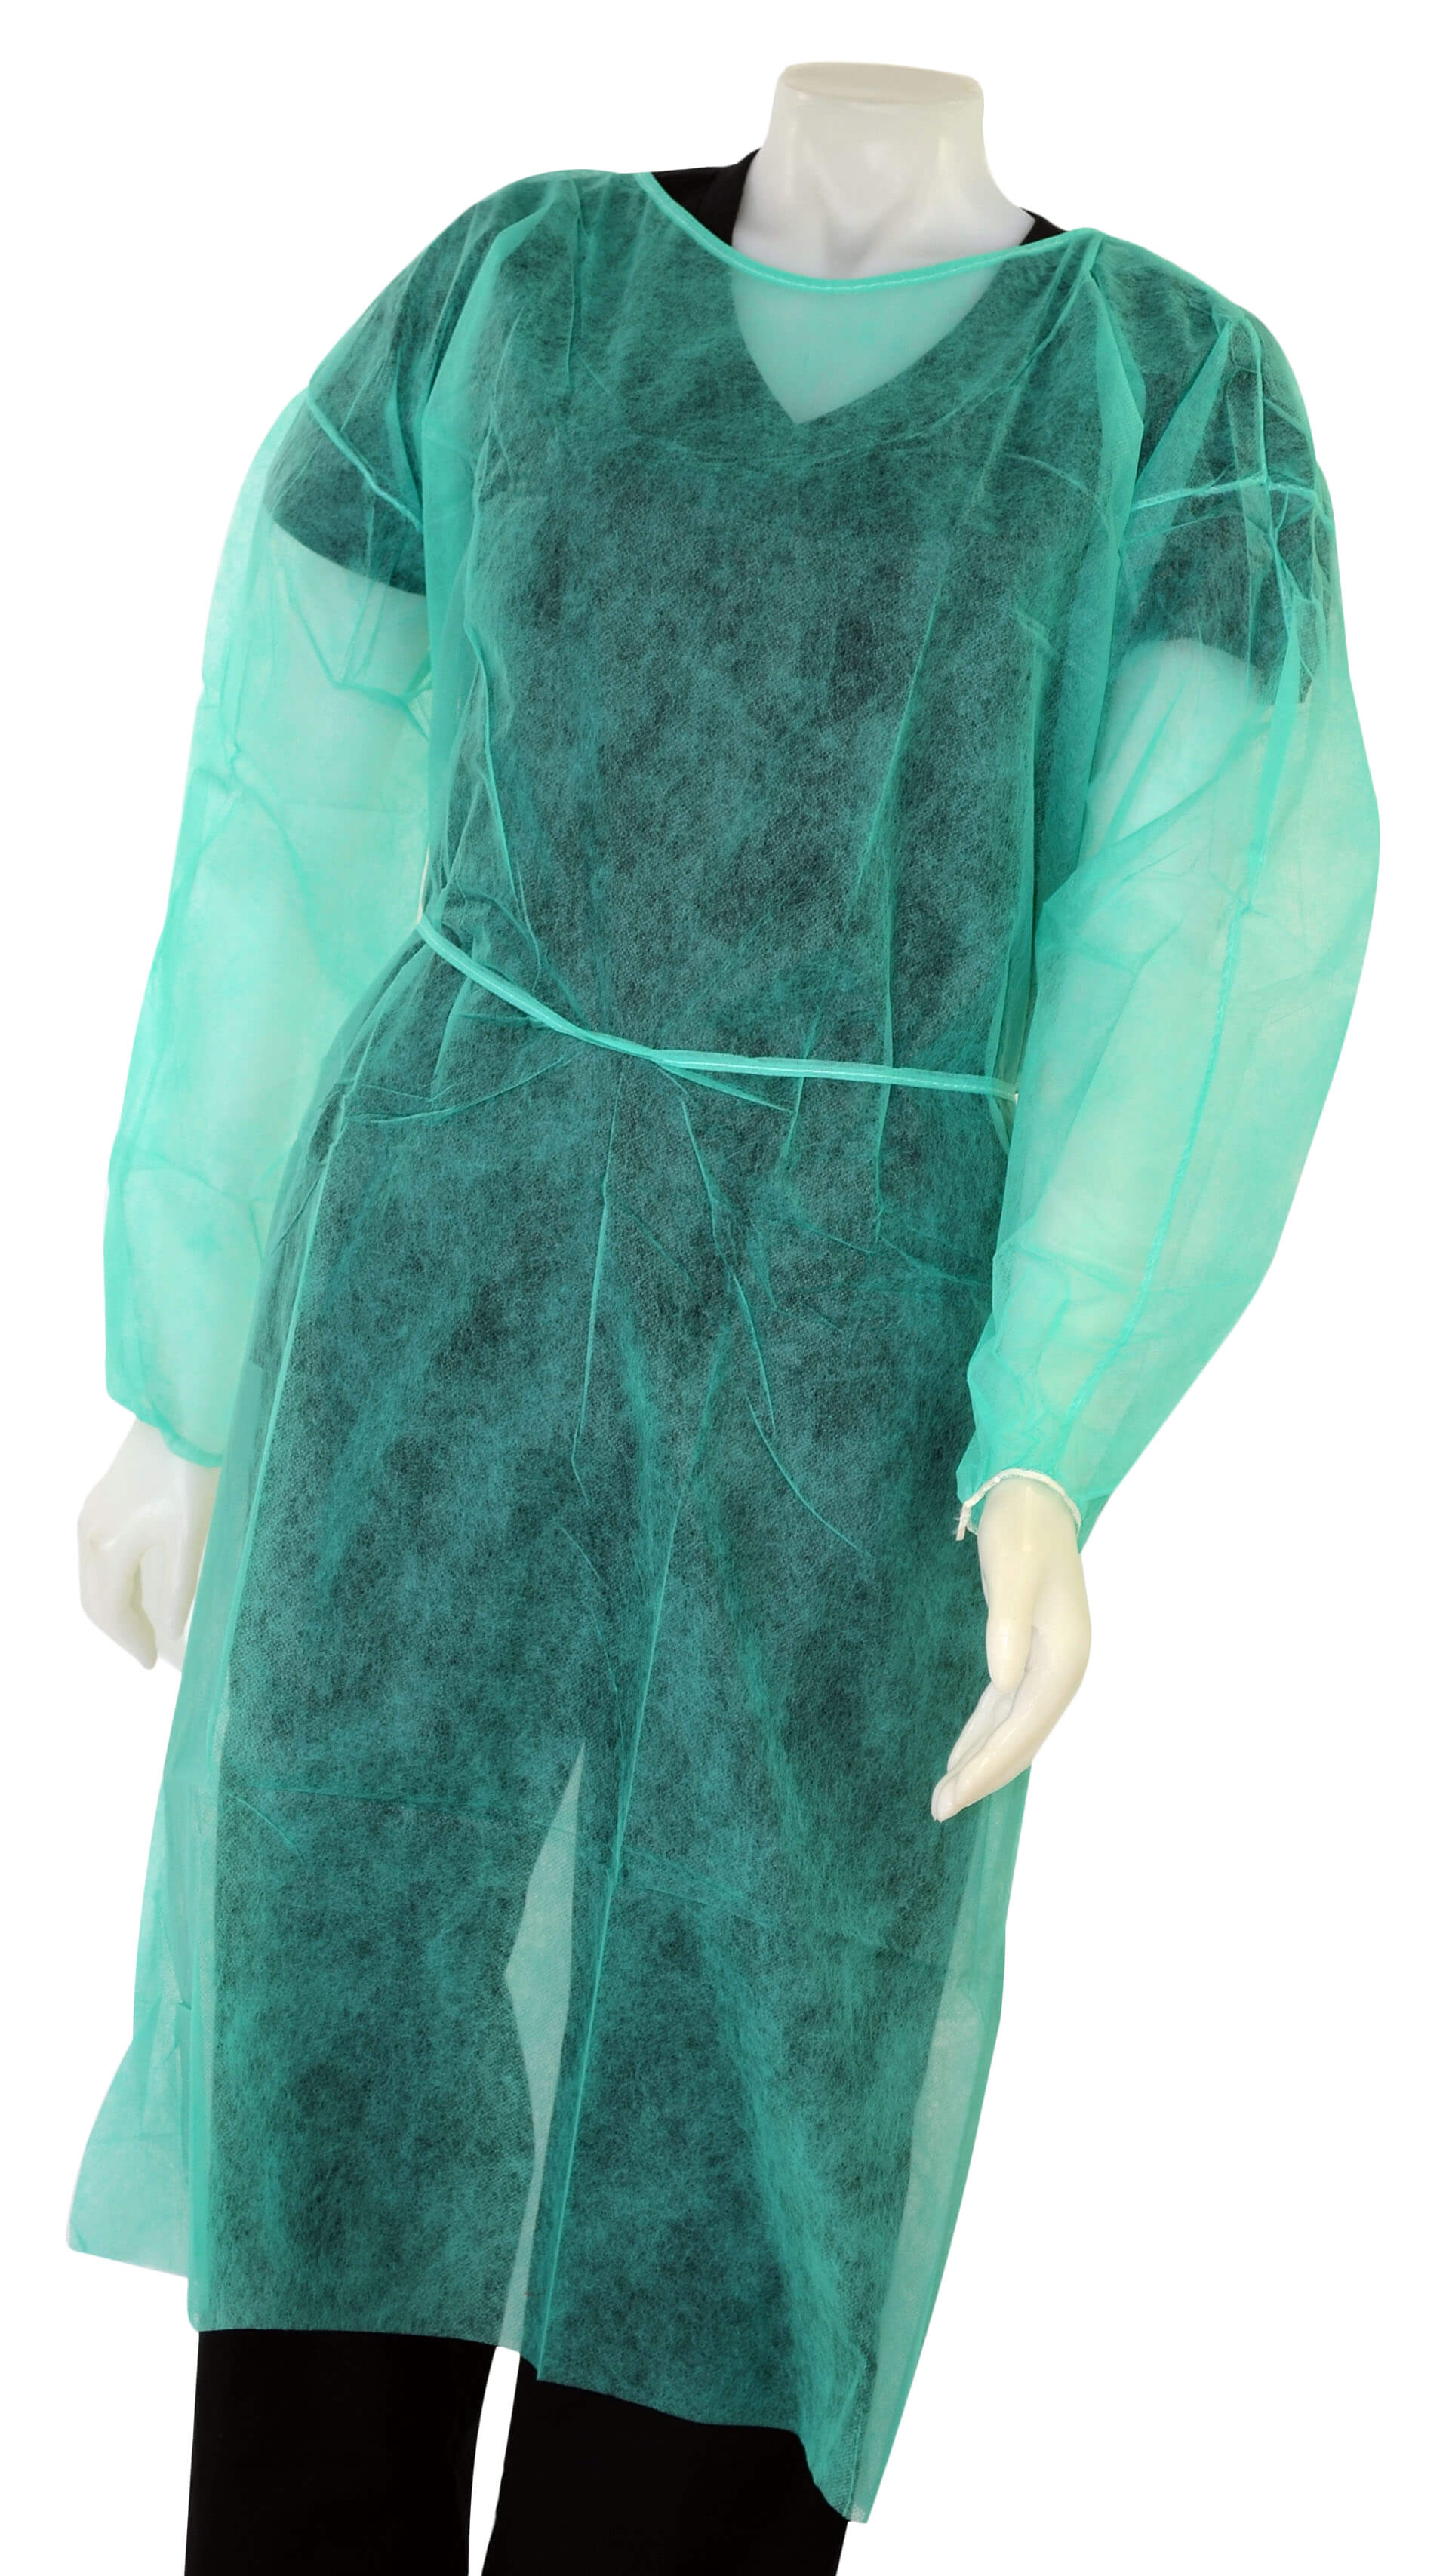 Isolation Gown with Elastic Cuffs